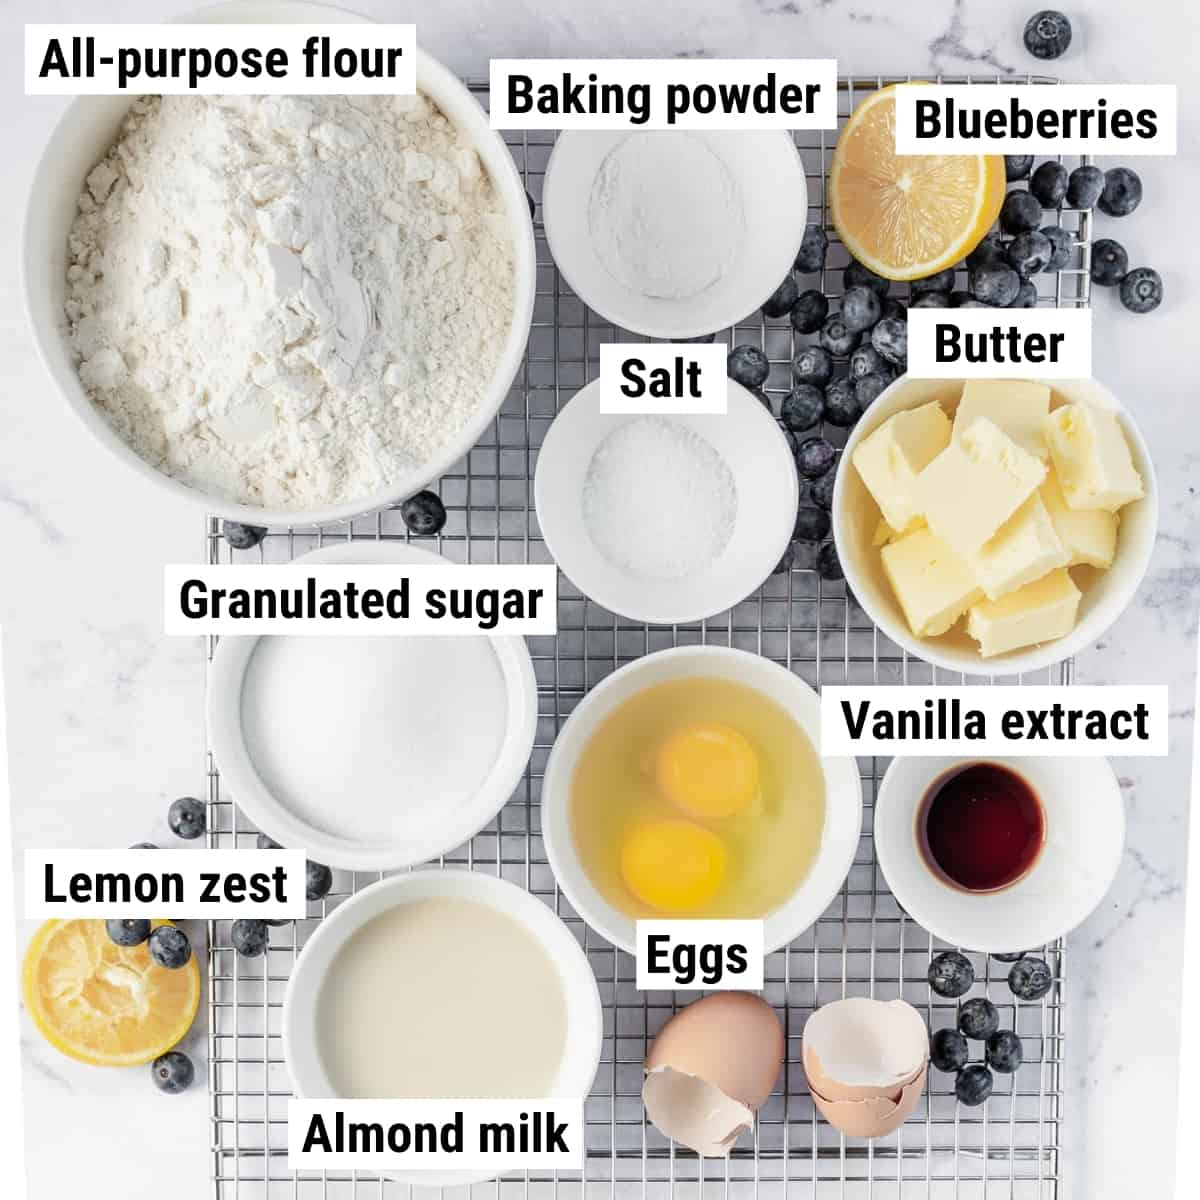 The ingredients to make lemon blueberry cookies.